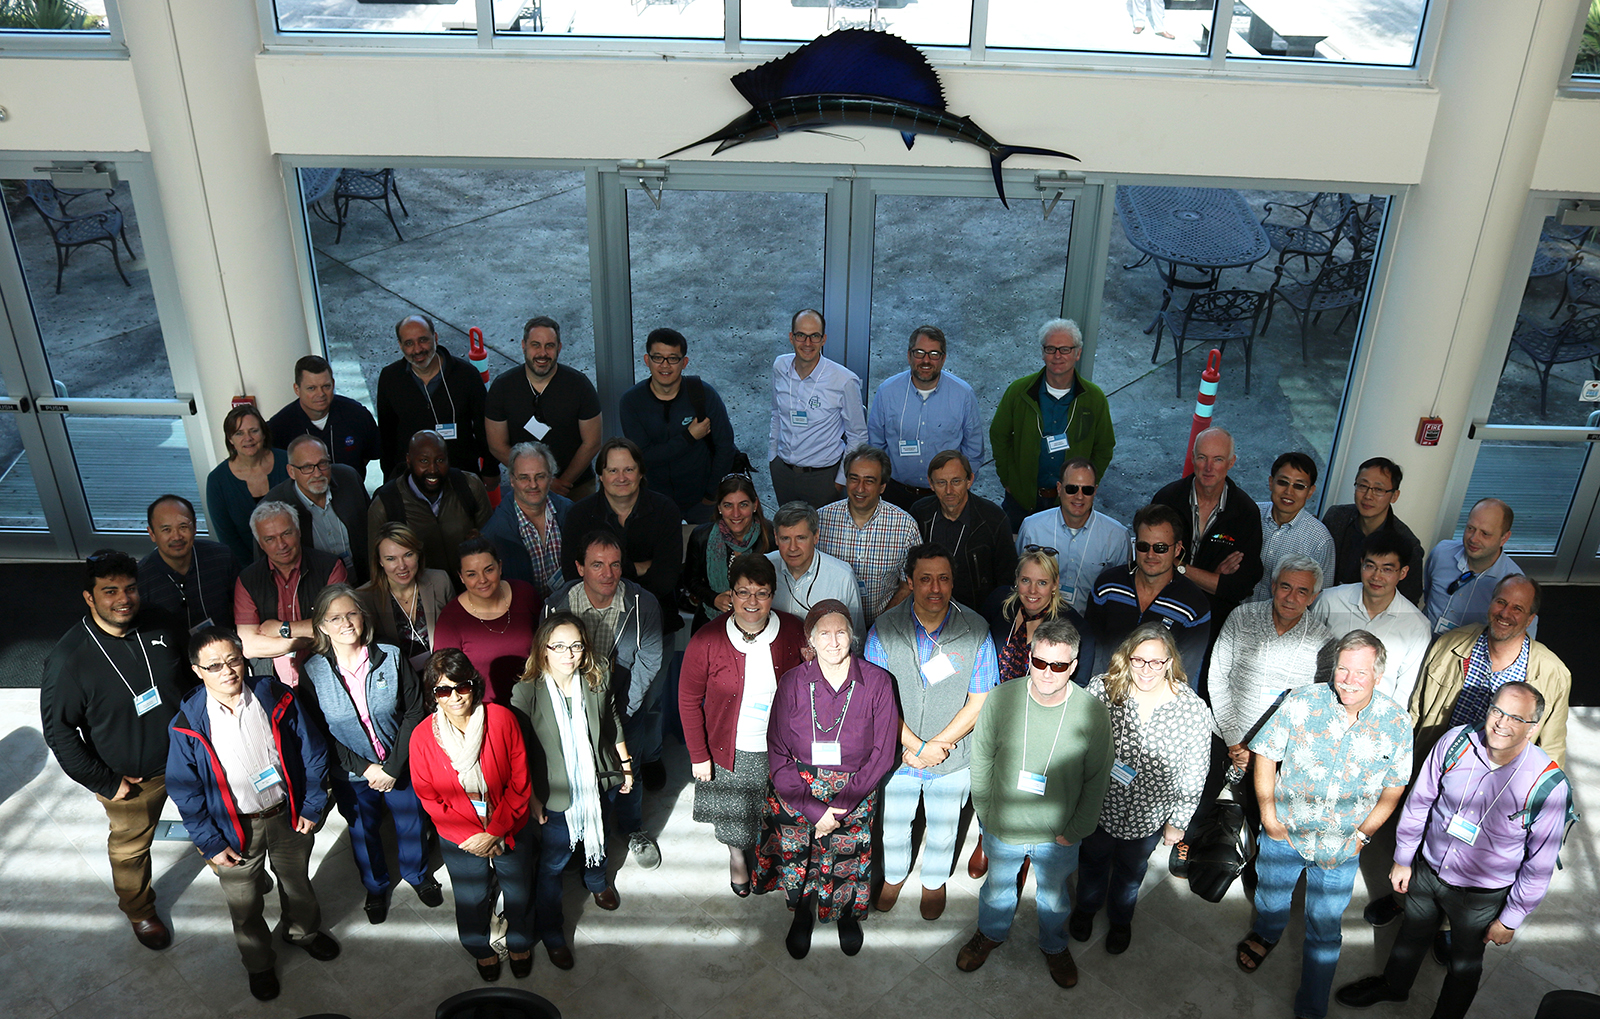 Members of the PACE Science Team pose for a photo at the 2018 Science Team Meeting, held at the Harbor Branch Oceanographic Institute in Fort Pierce, FL.